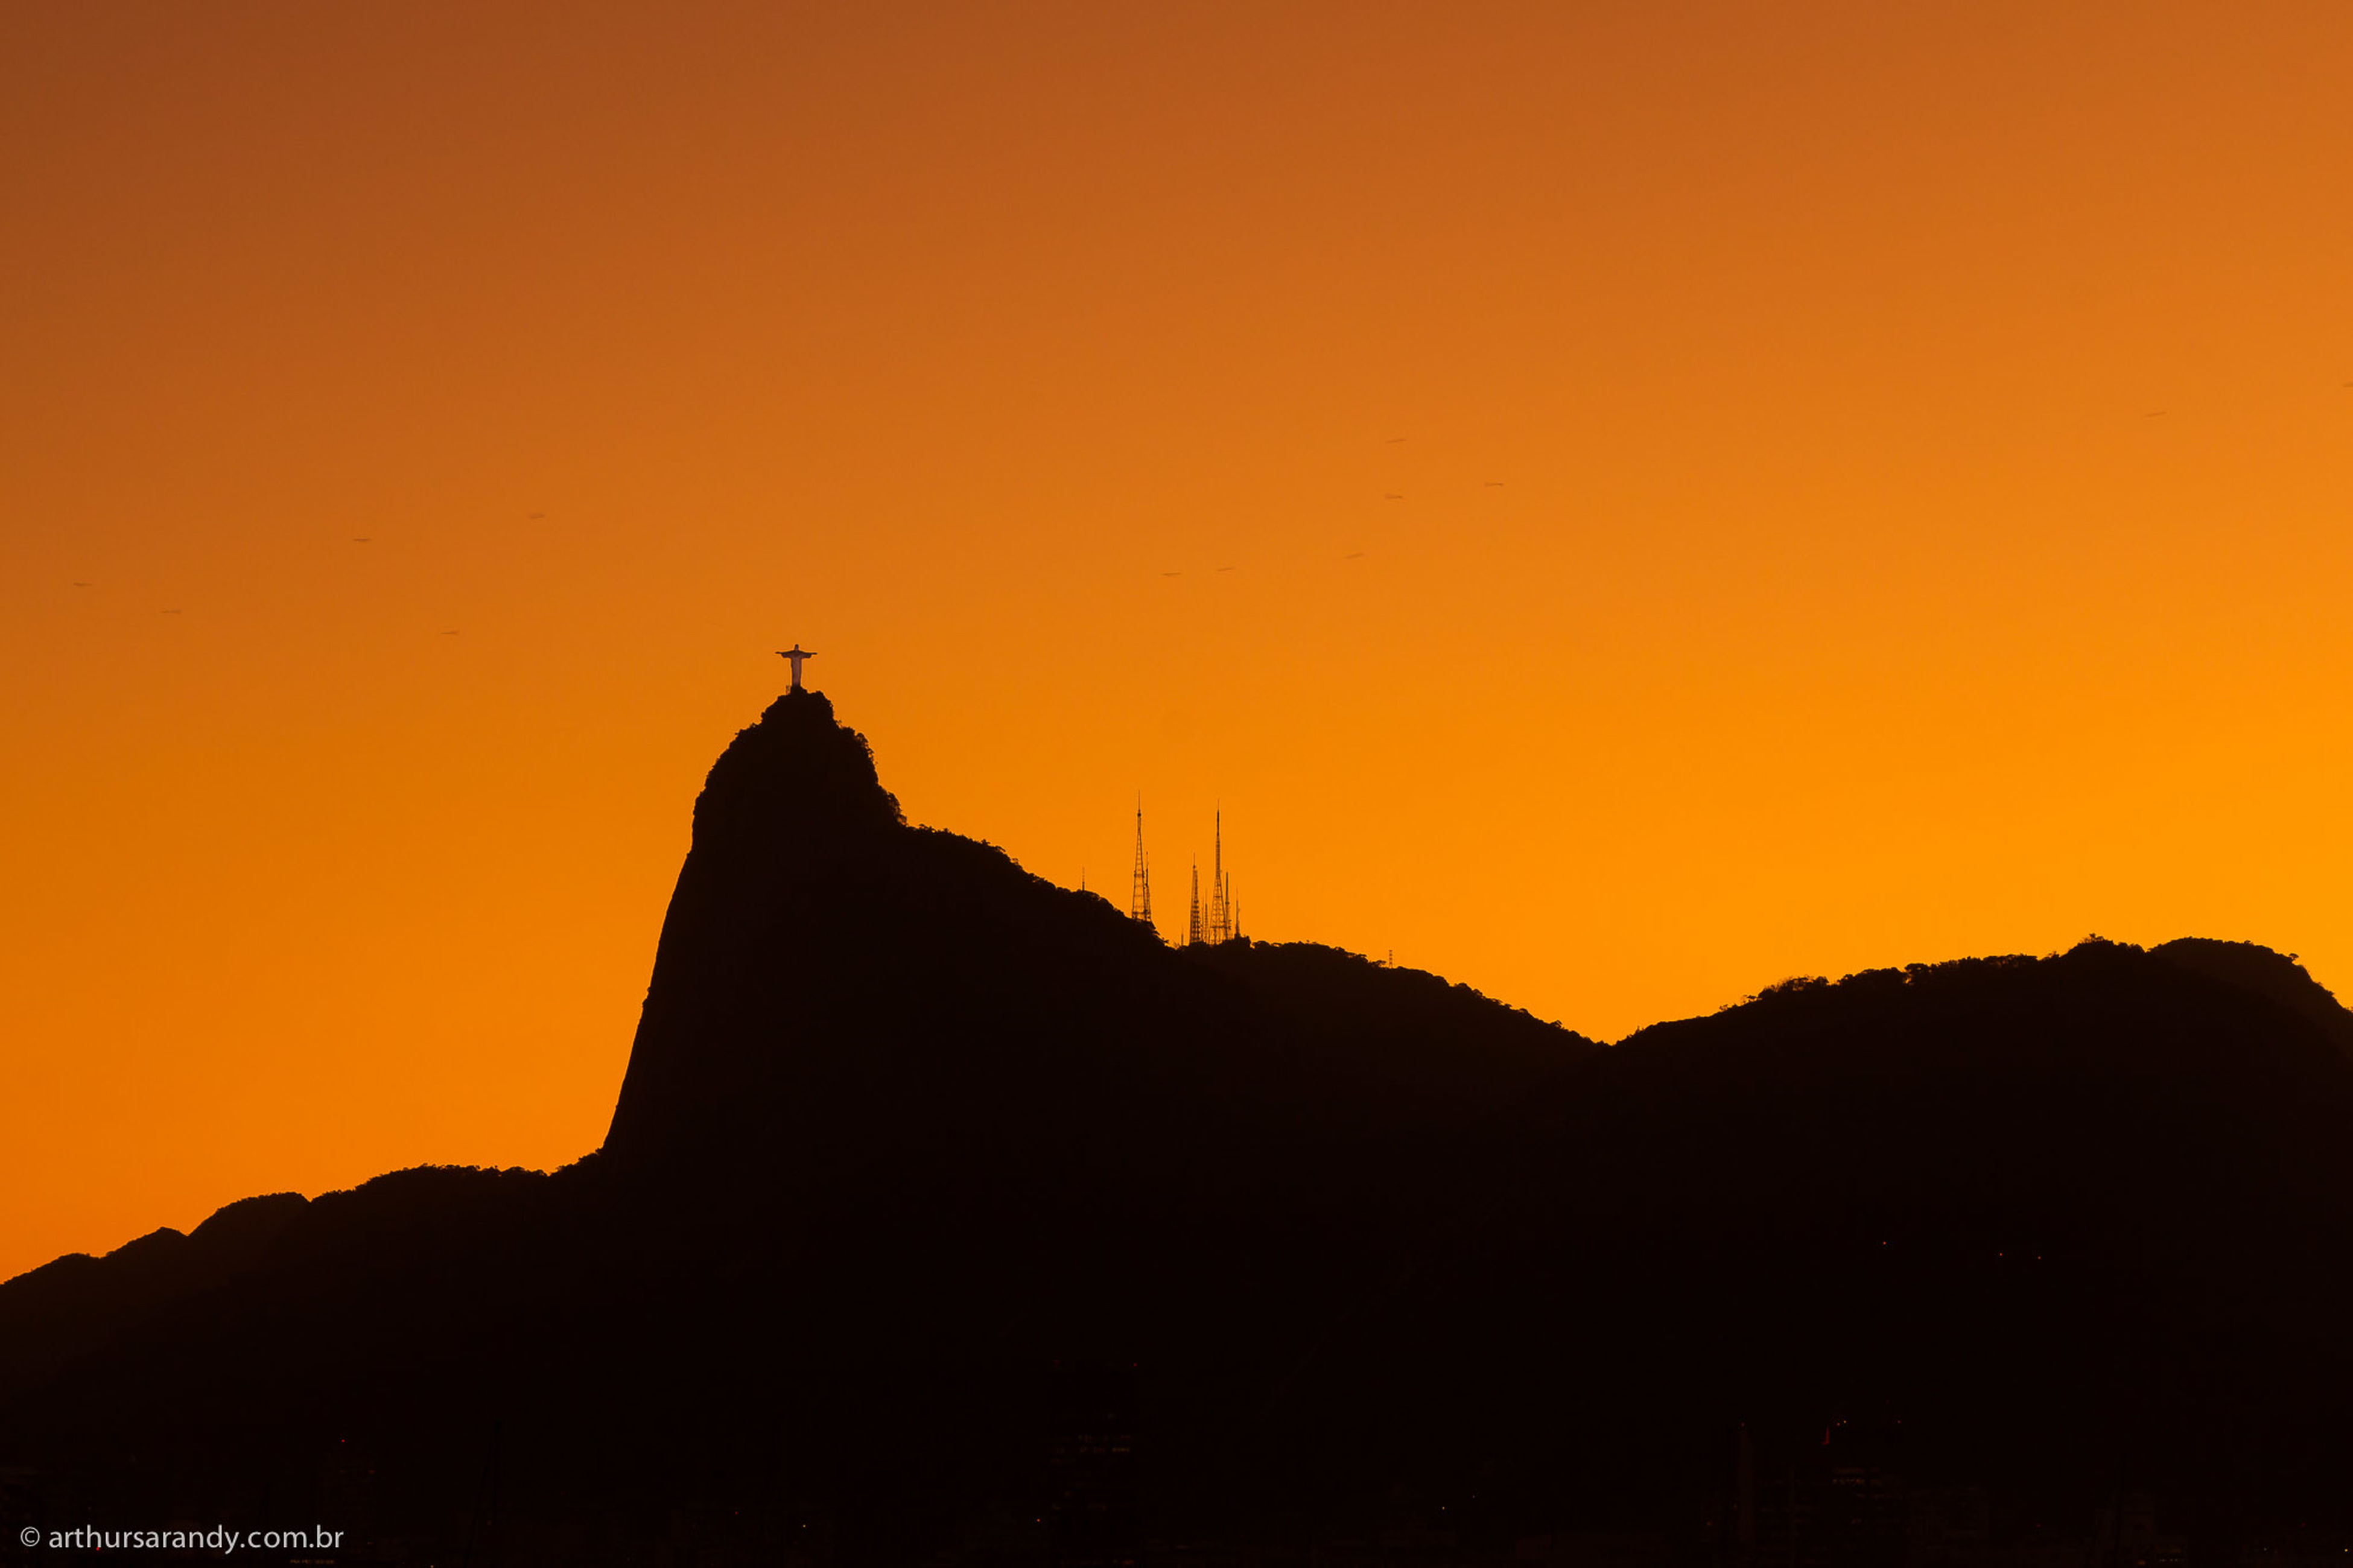 sunset, silhouette, architecture, built structure, building exterior, orange color, copy space, clear sky, religion, place of worship, mountain, spirituality, scenics, dusk, sky, beauty in nature, tranquility, famous place, nature, travel destinations